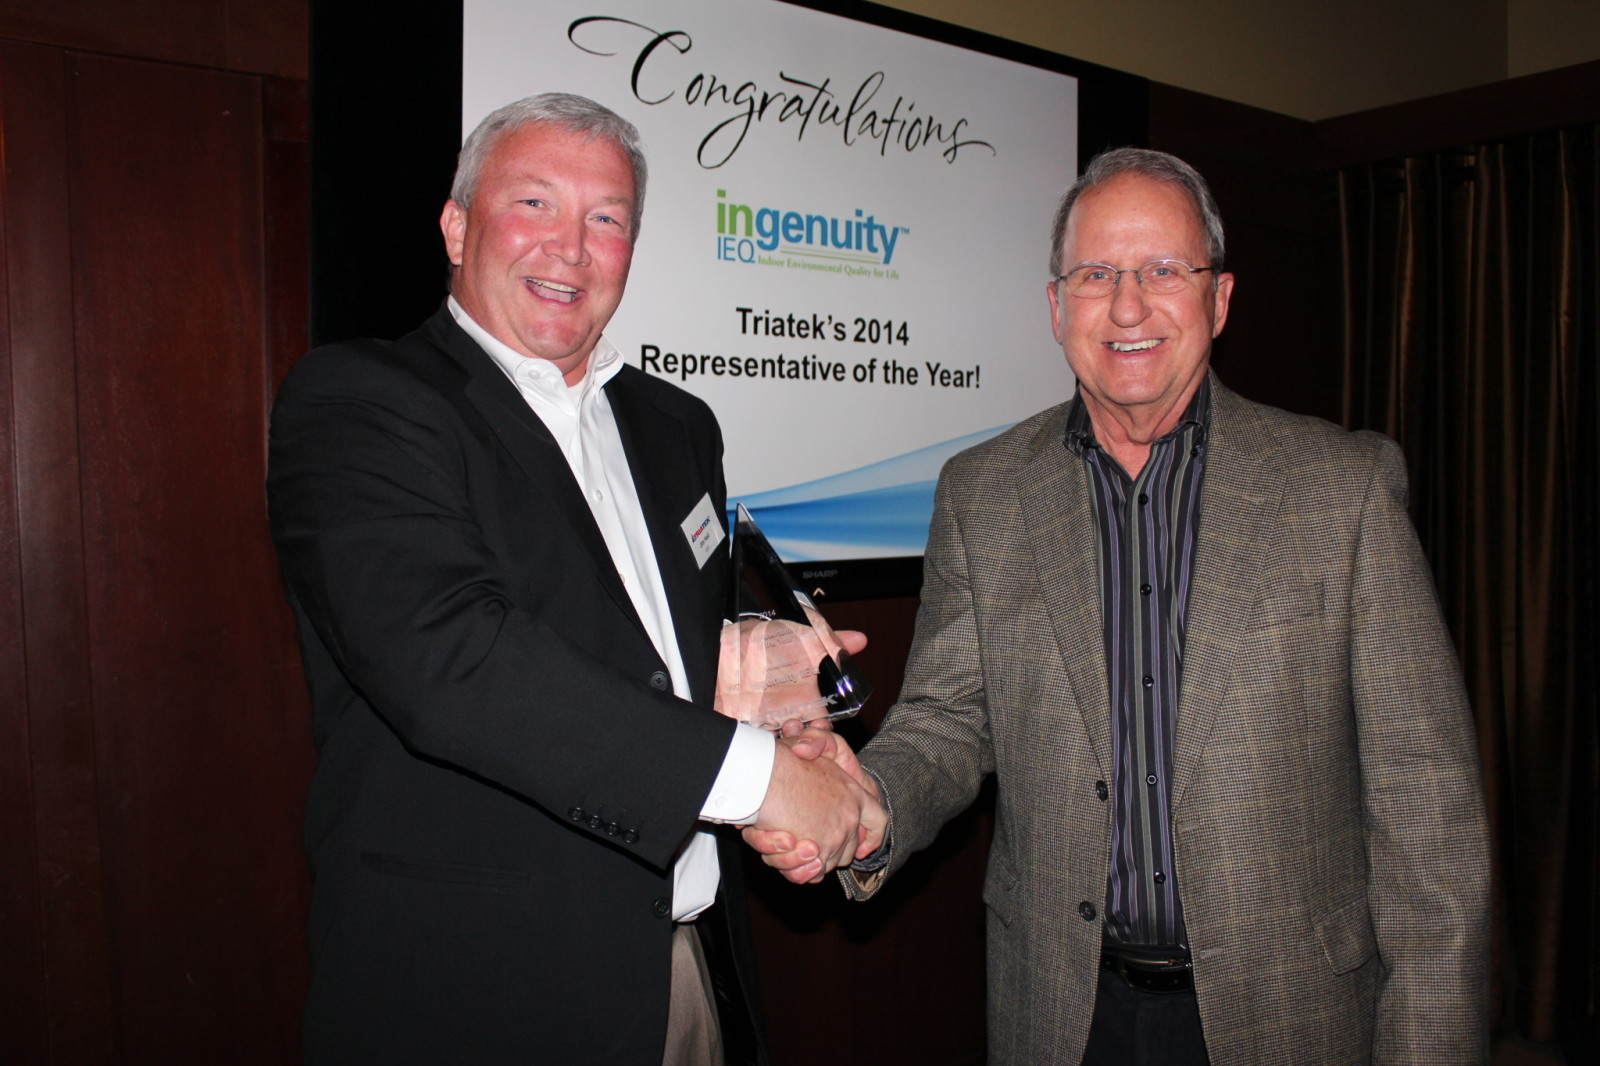 Jim Hall and Mike Fox from Ingenuity IEQ